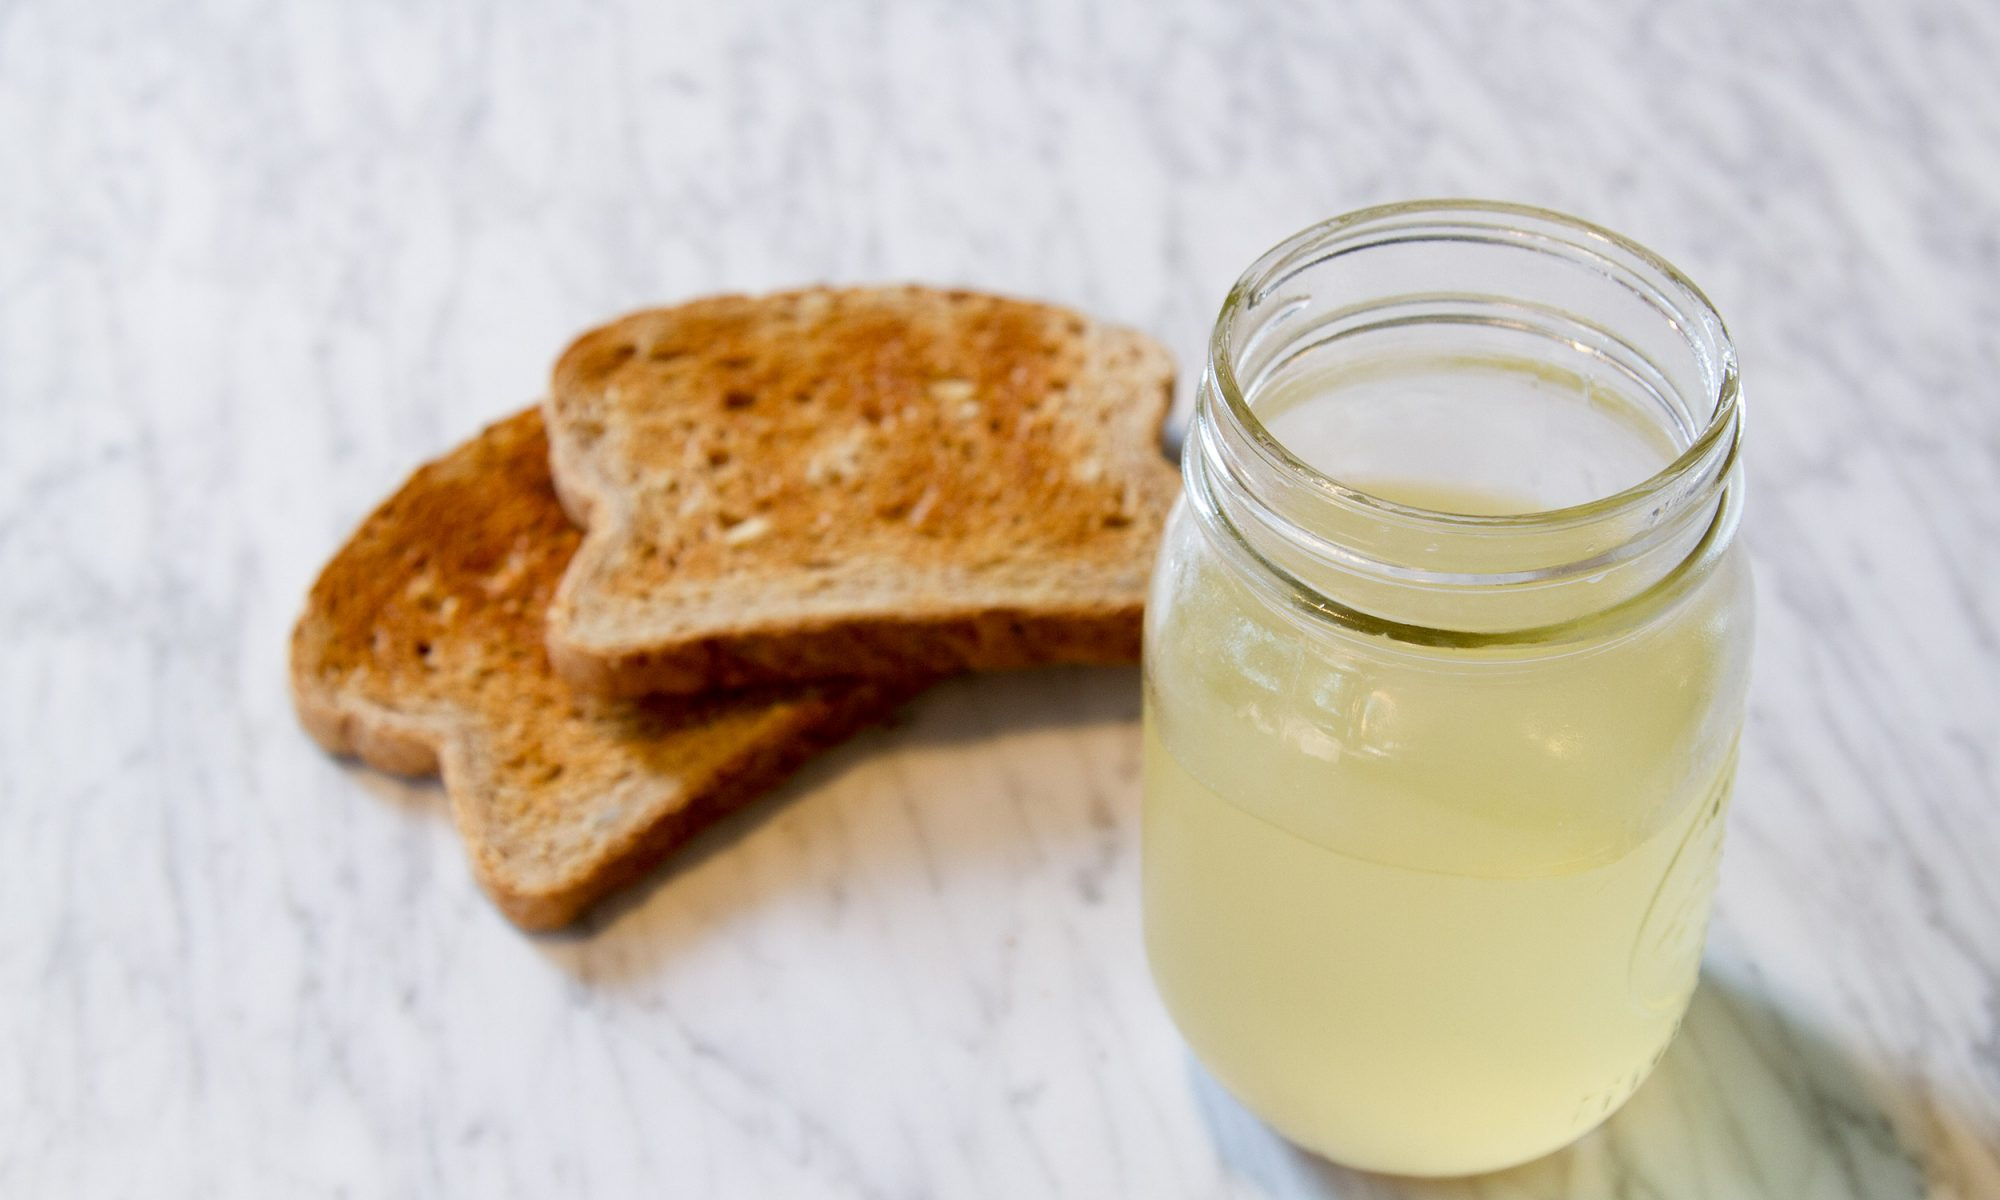 Toast Water Will Not Save You